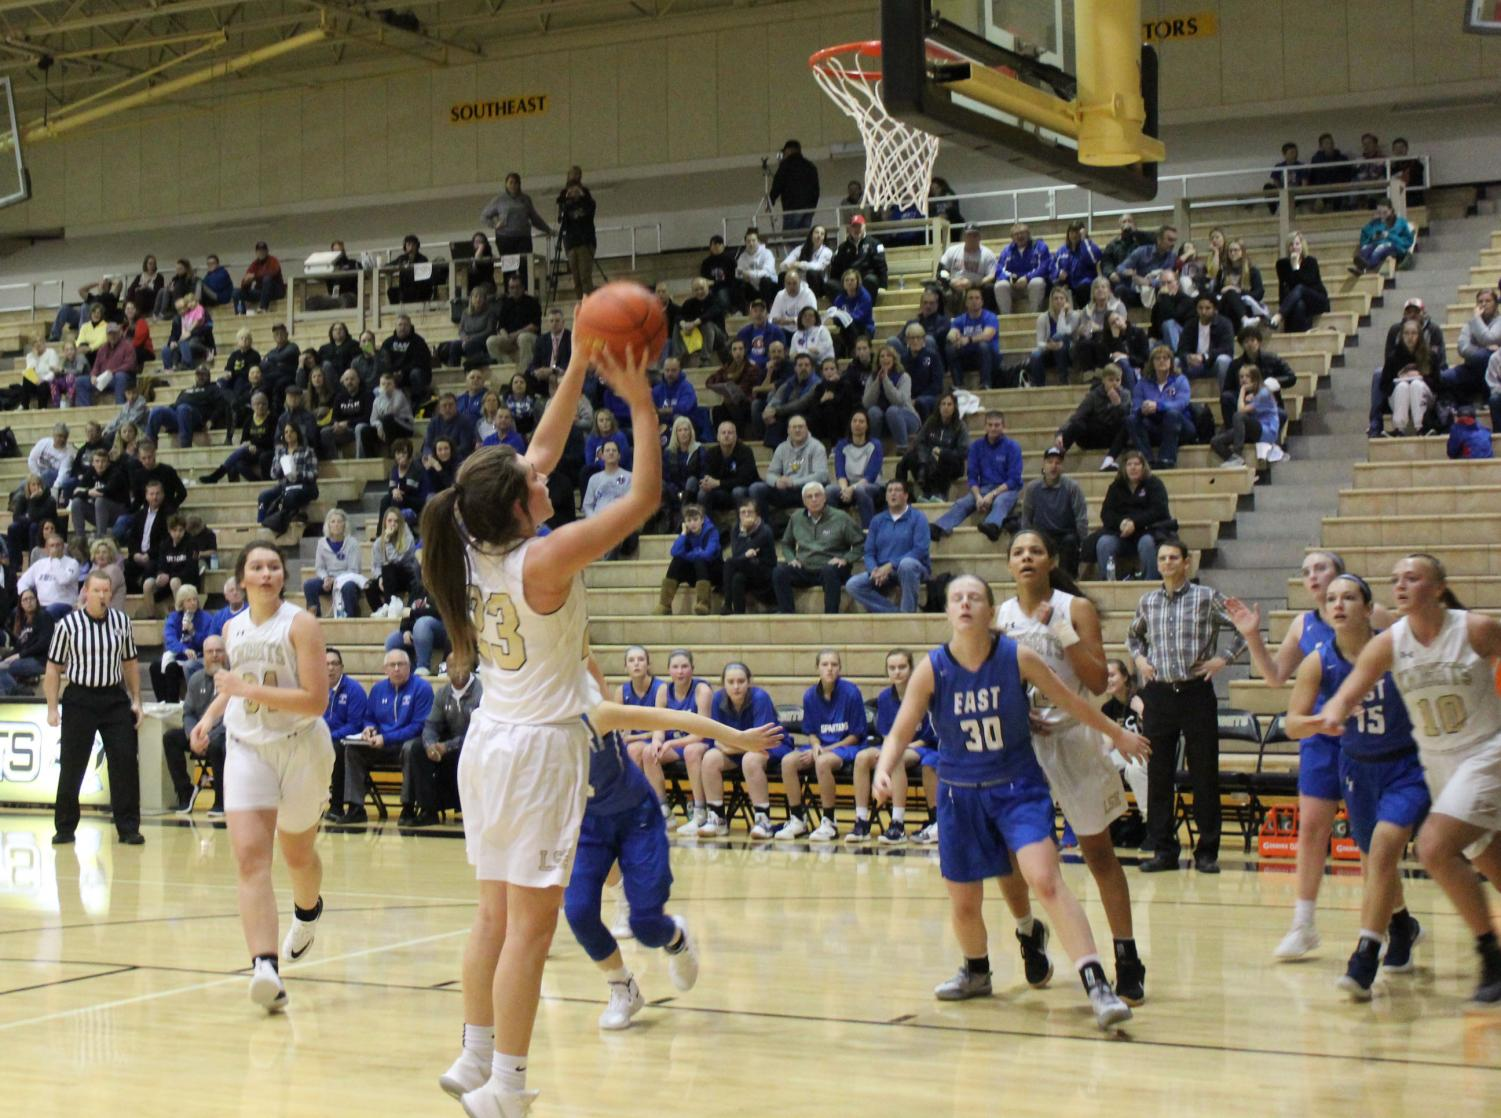 Meg Hatfield attempts a two point shot against East during the game on Friday, Jan. 11.